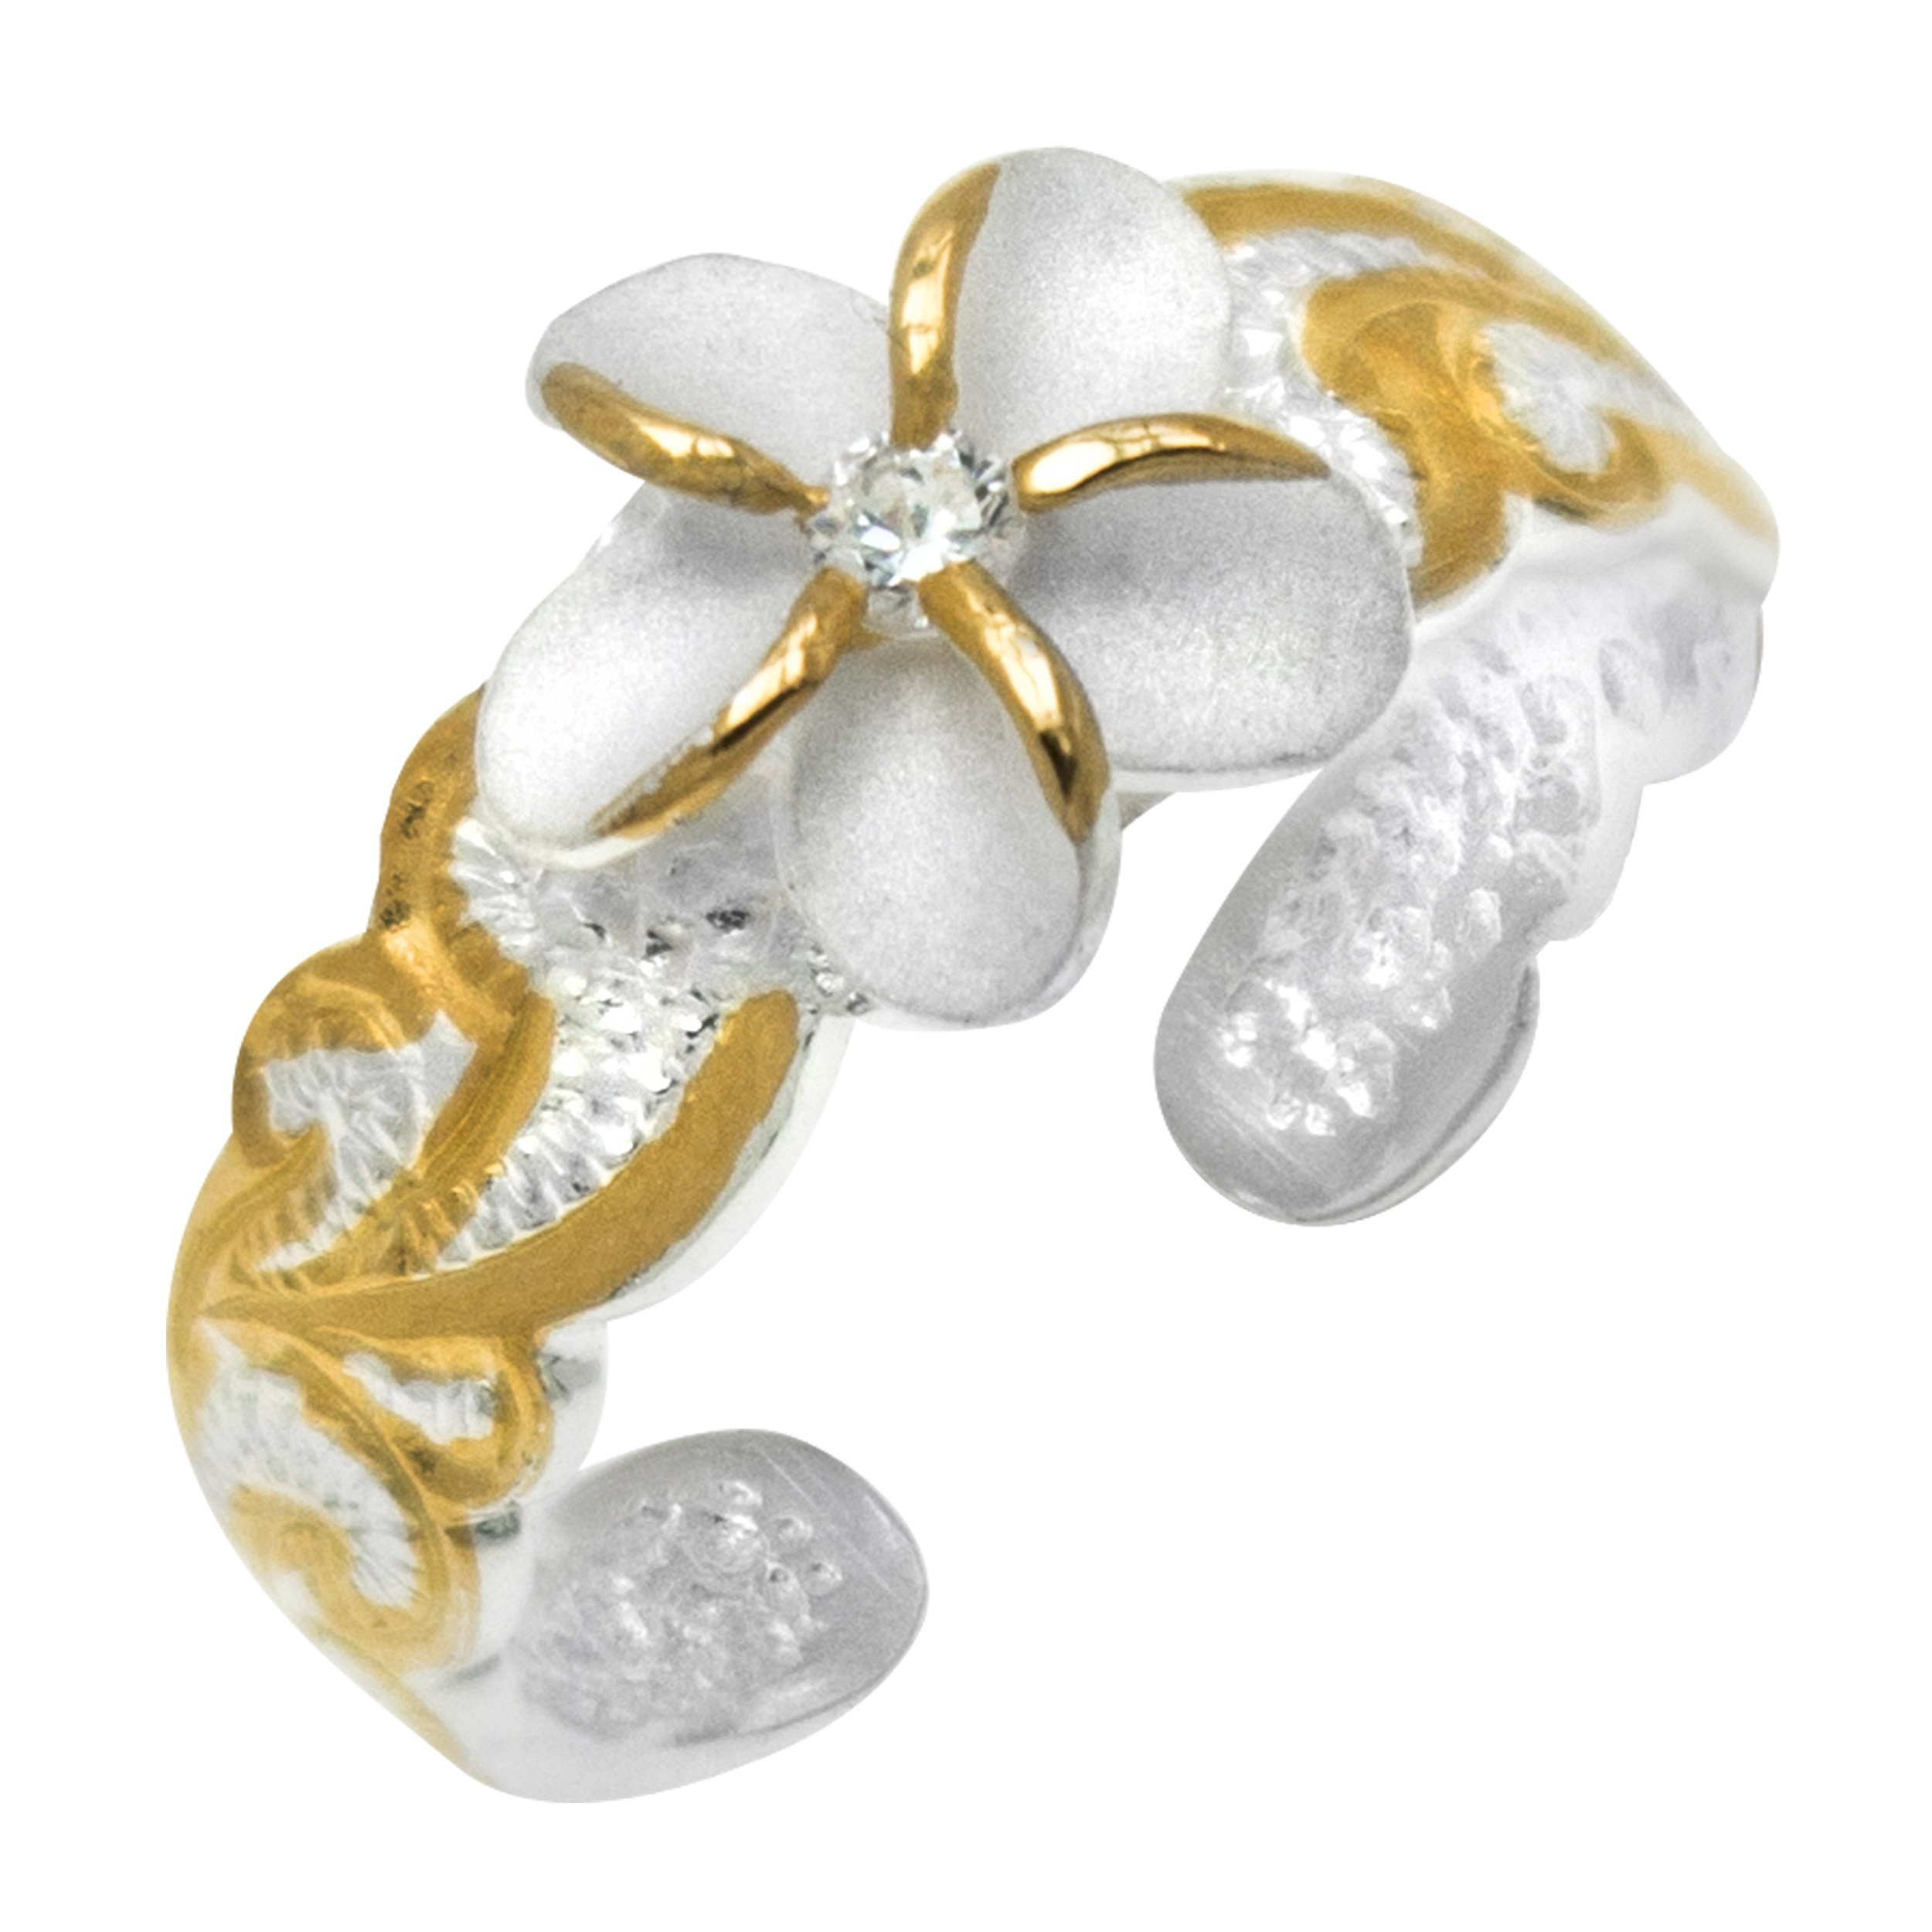 Sterling Silver Two Tone Plumeria CZ Toe Ring with 14k Gold Plated Trim